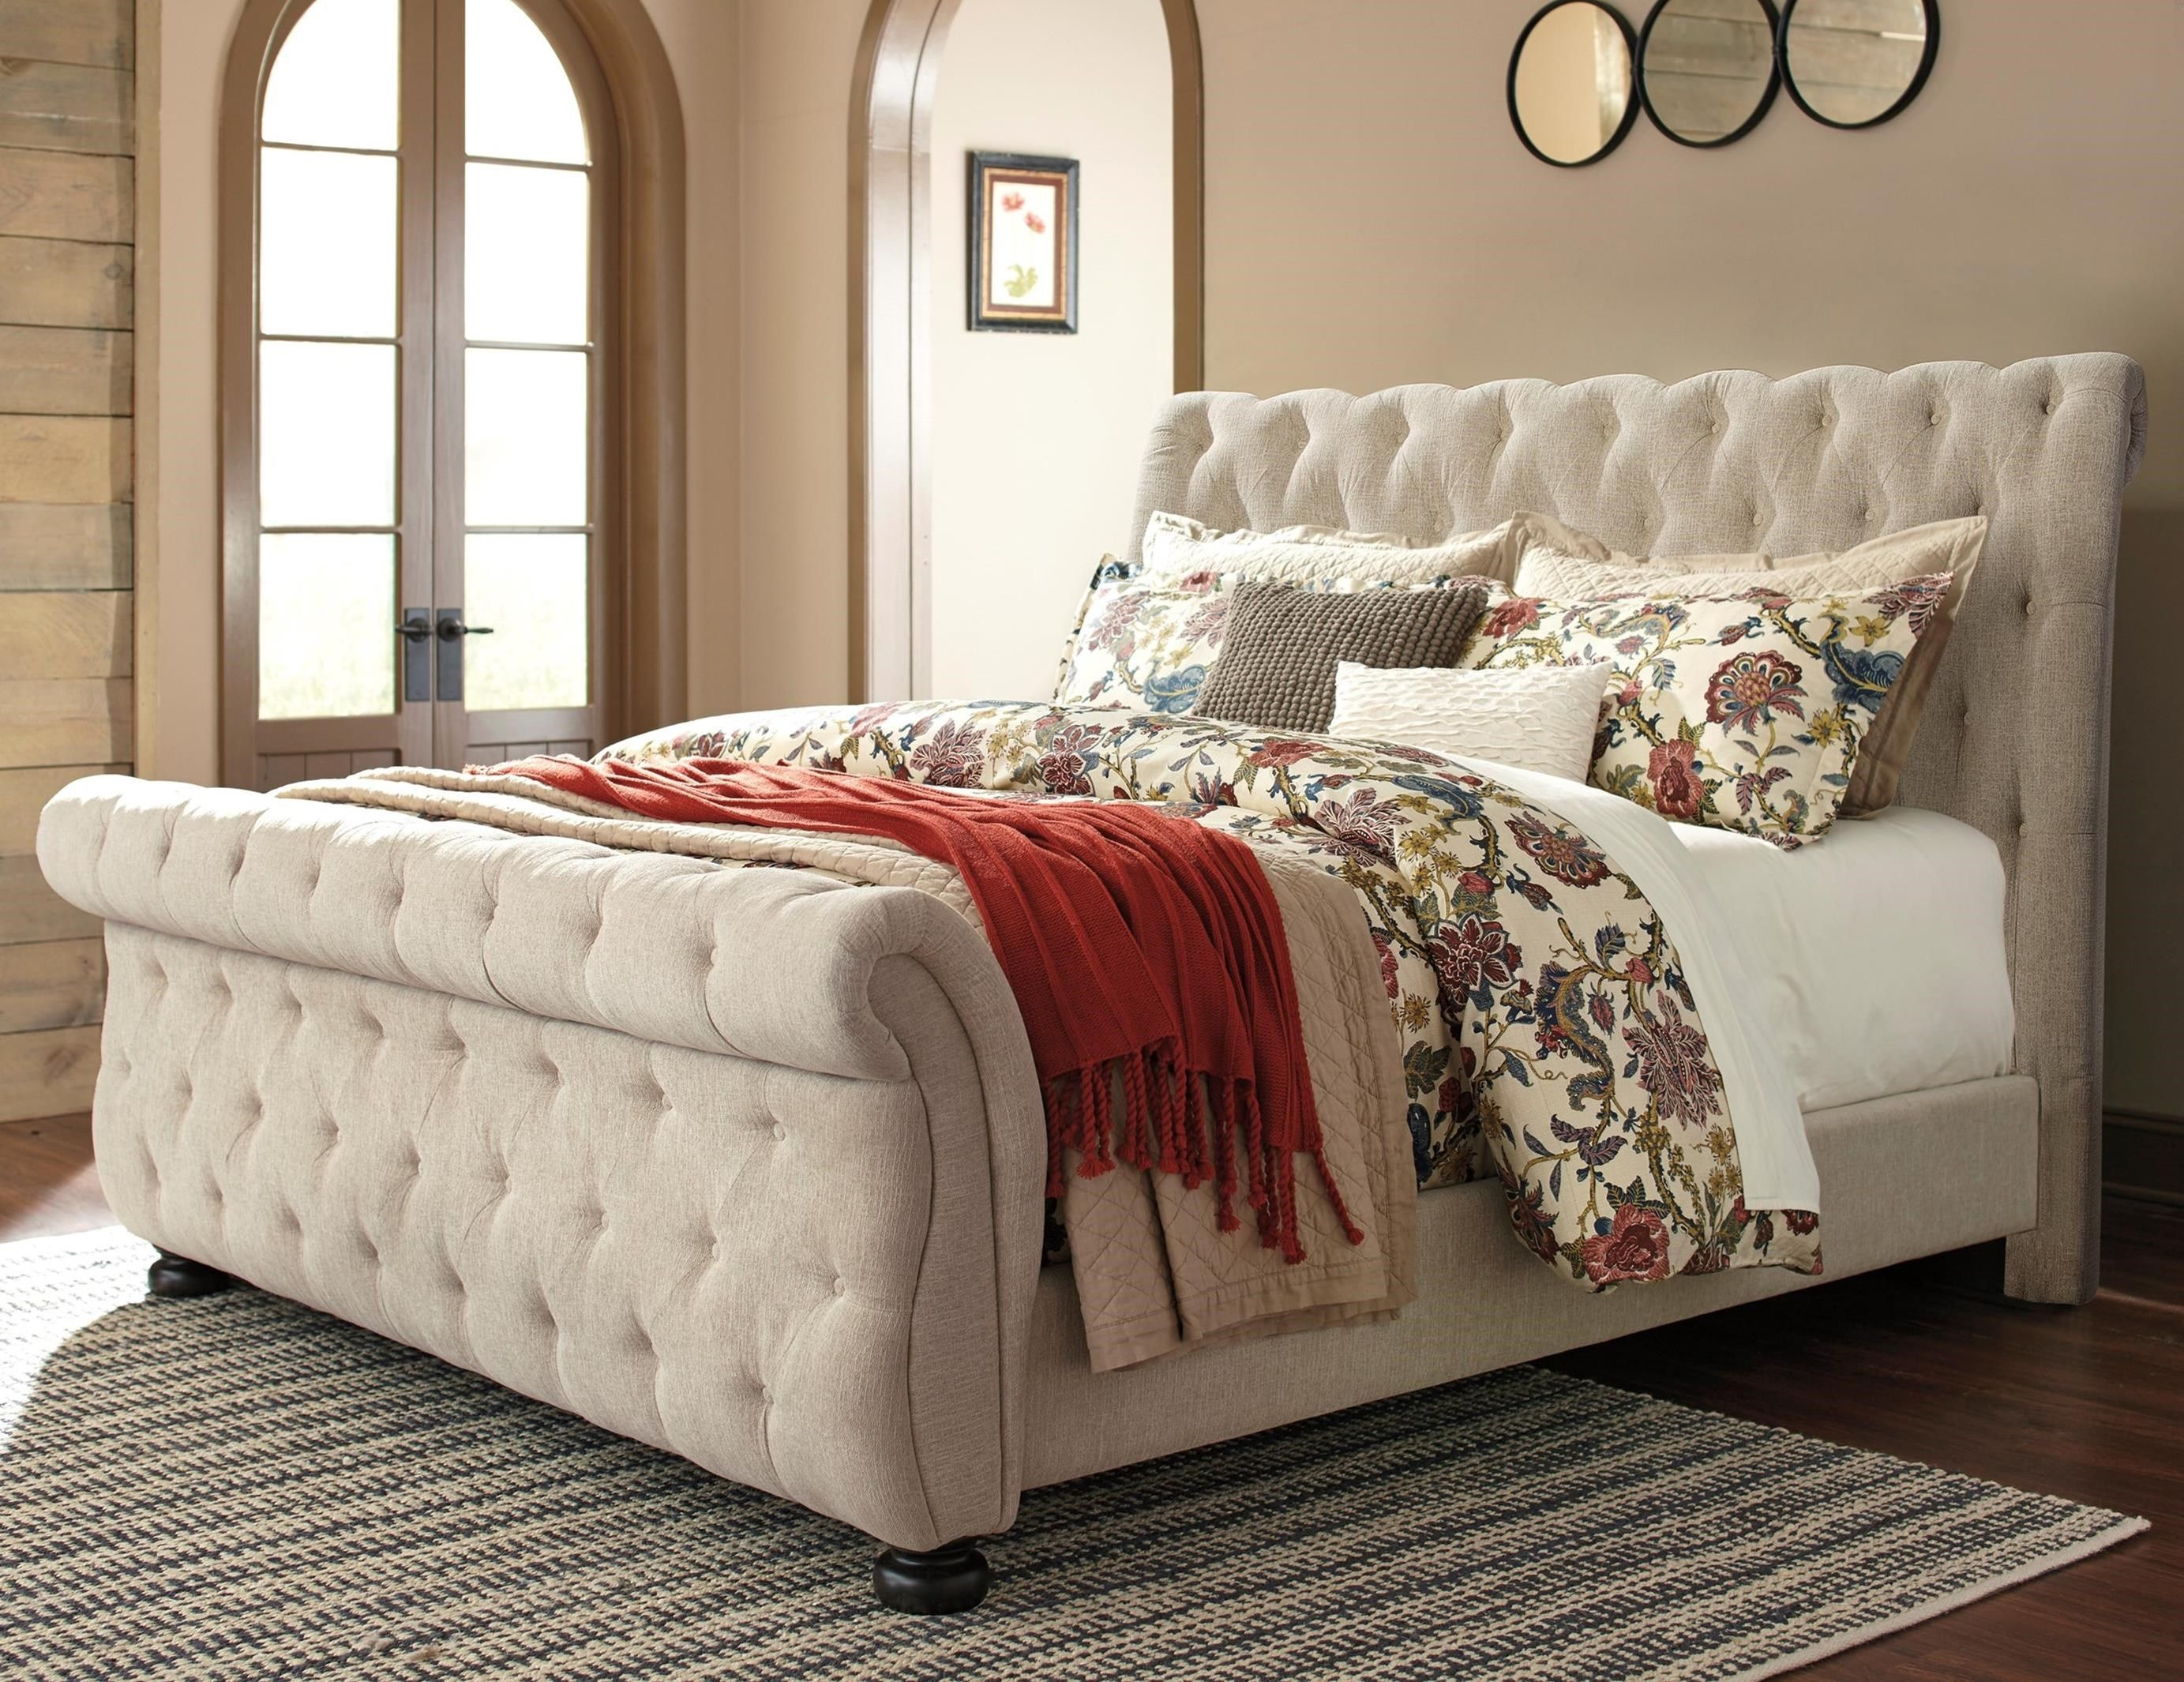 Willenburg Queen Upholstered Sleigh Bed By Signature Design By